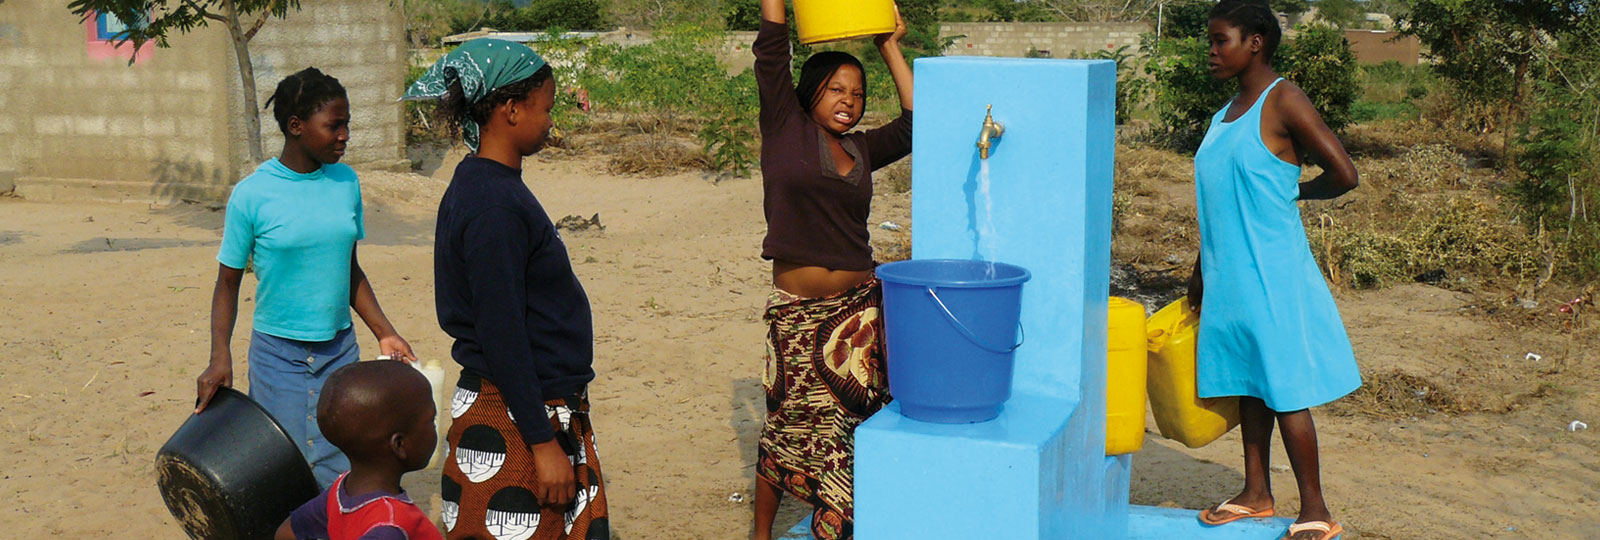 Drinking water in Mozambique